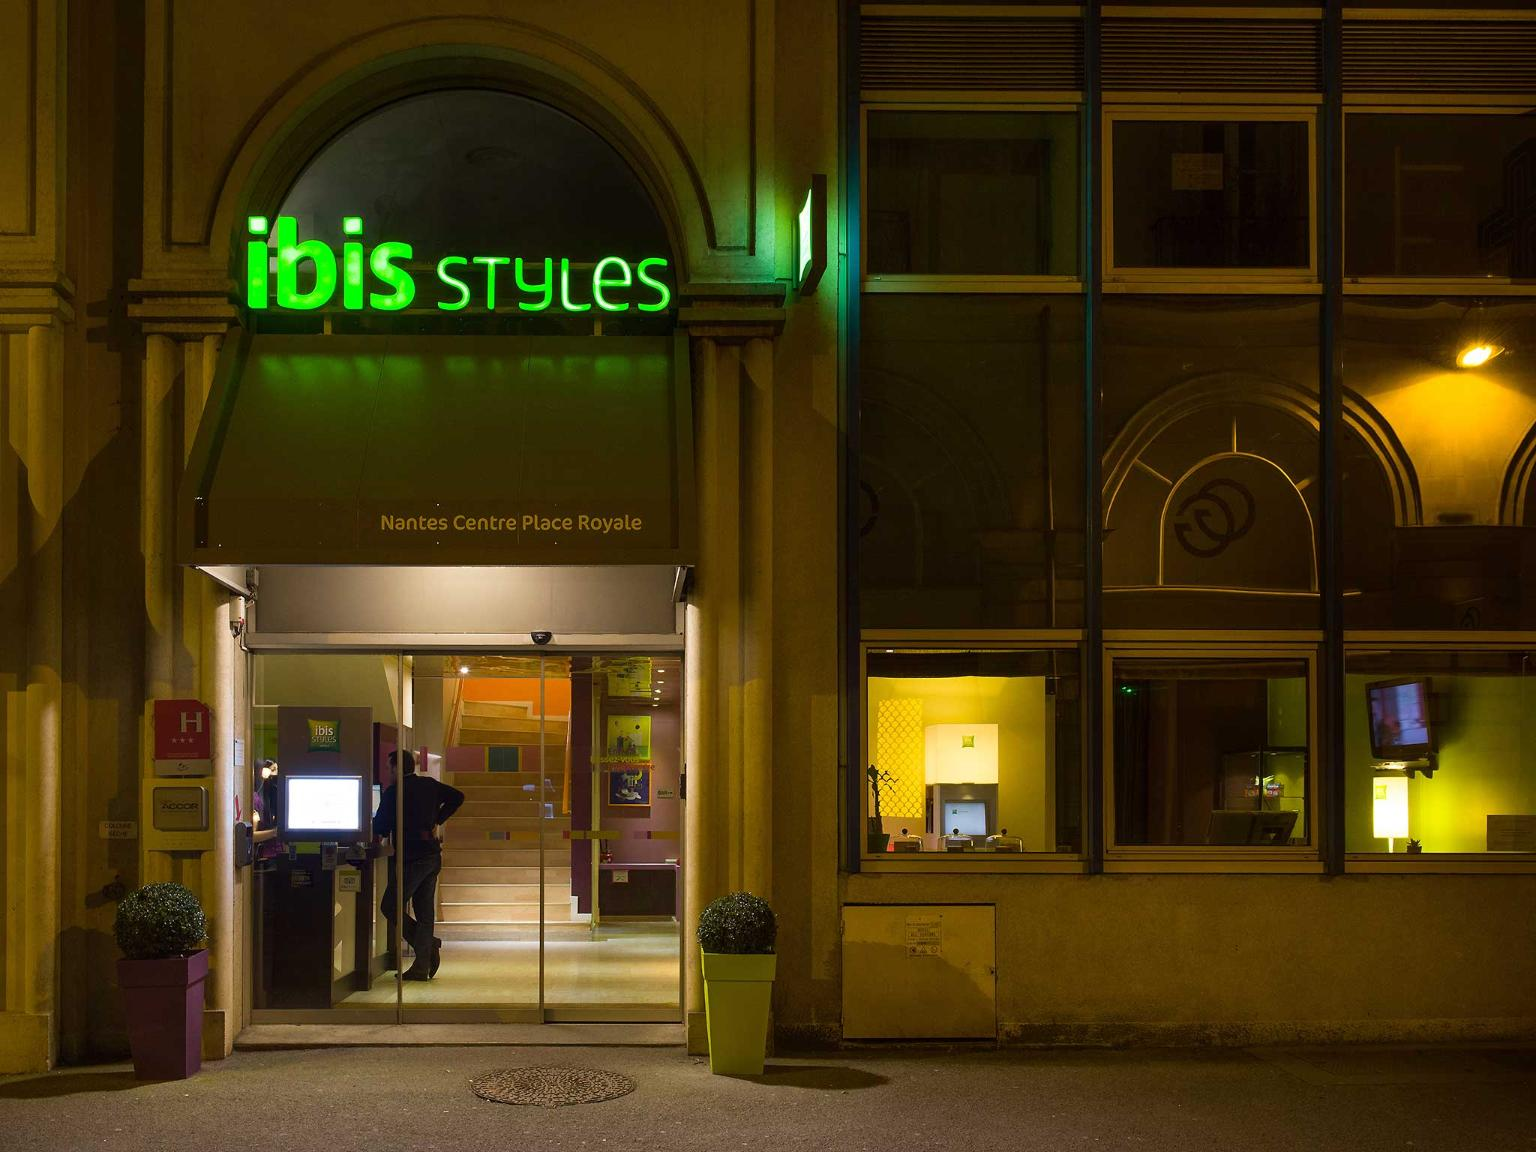 ibis styles nantes centre place royale h tel 3 rue couedic 44000 nantes adresse horaire. Black Bedroom Furniture Sets. Home Design Ideas